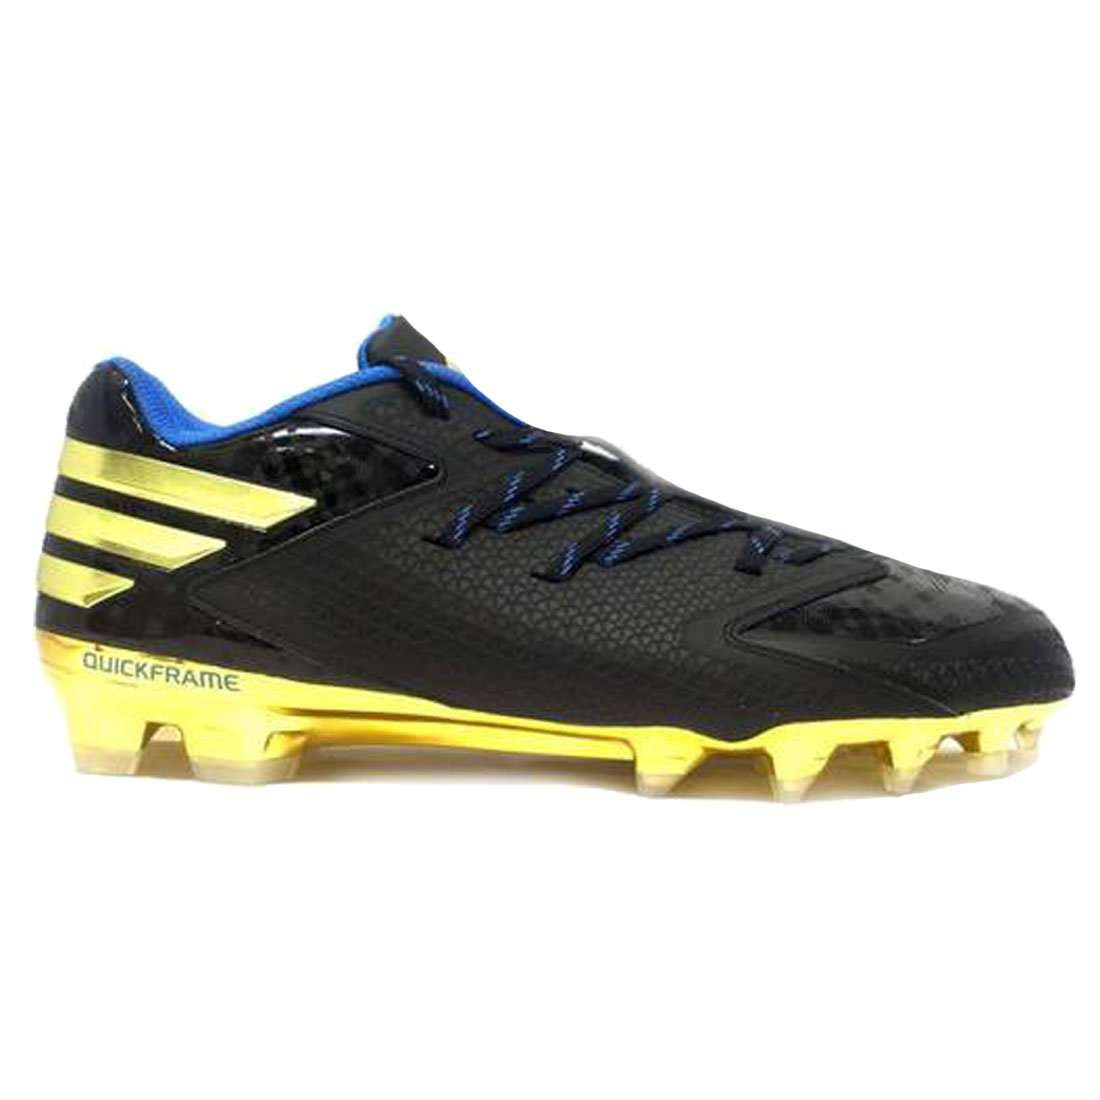 d7de6e15f77b adidas Men's SM Freak X Carbon Low Football Cleats